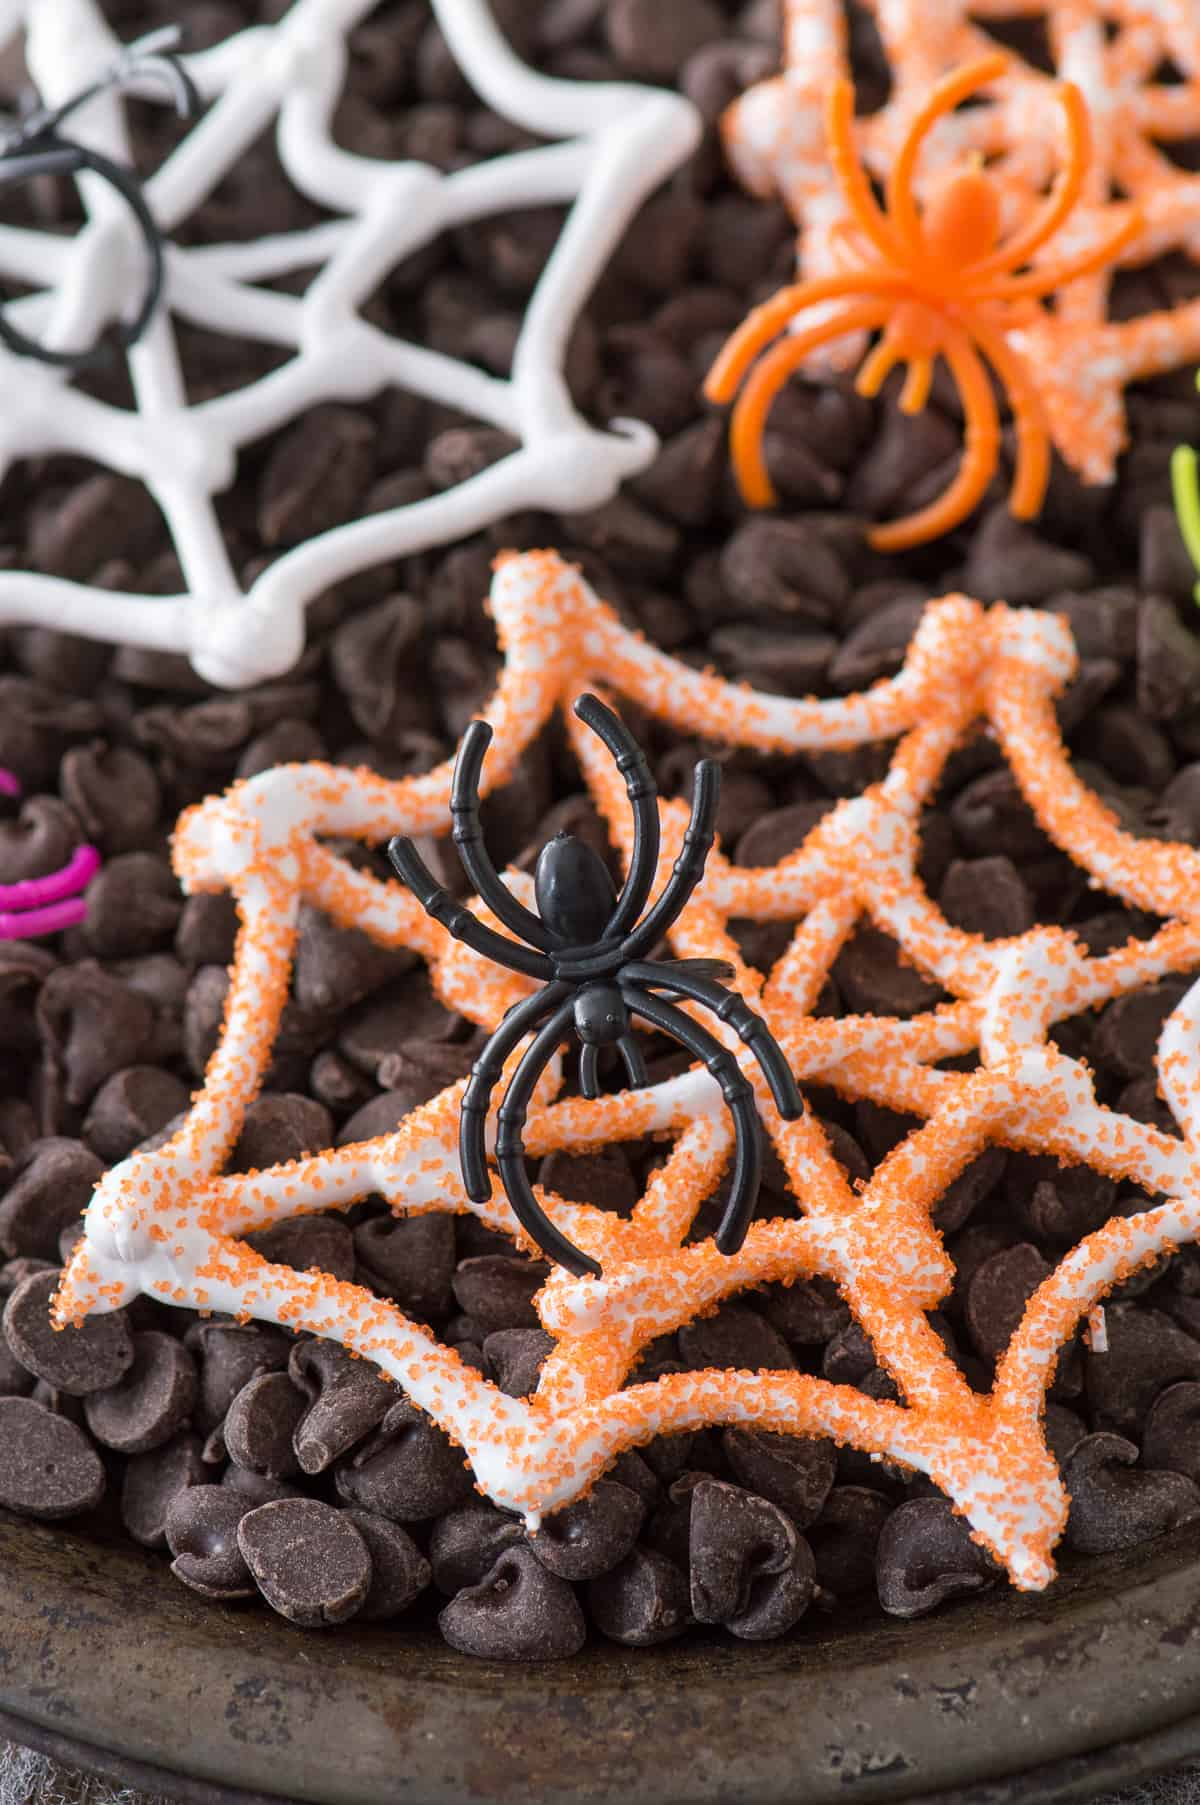 An easy Halloween treat - edible spider web meringues! Display these spider webs with plastic spider rings for a spooky look!